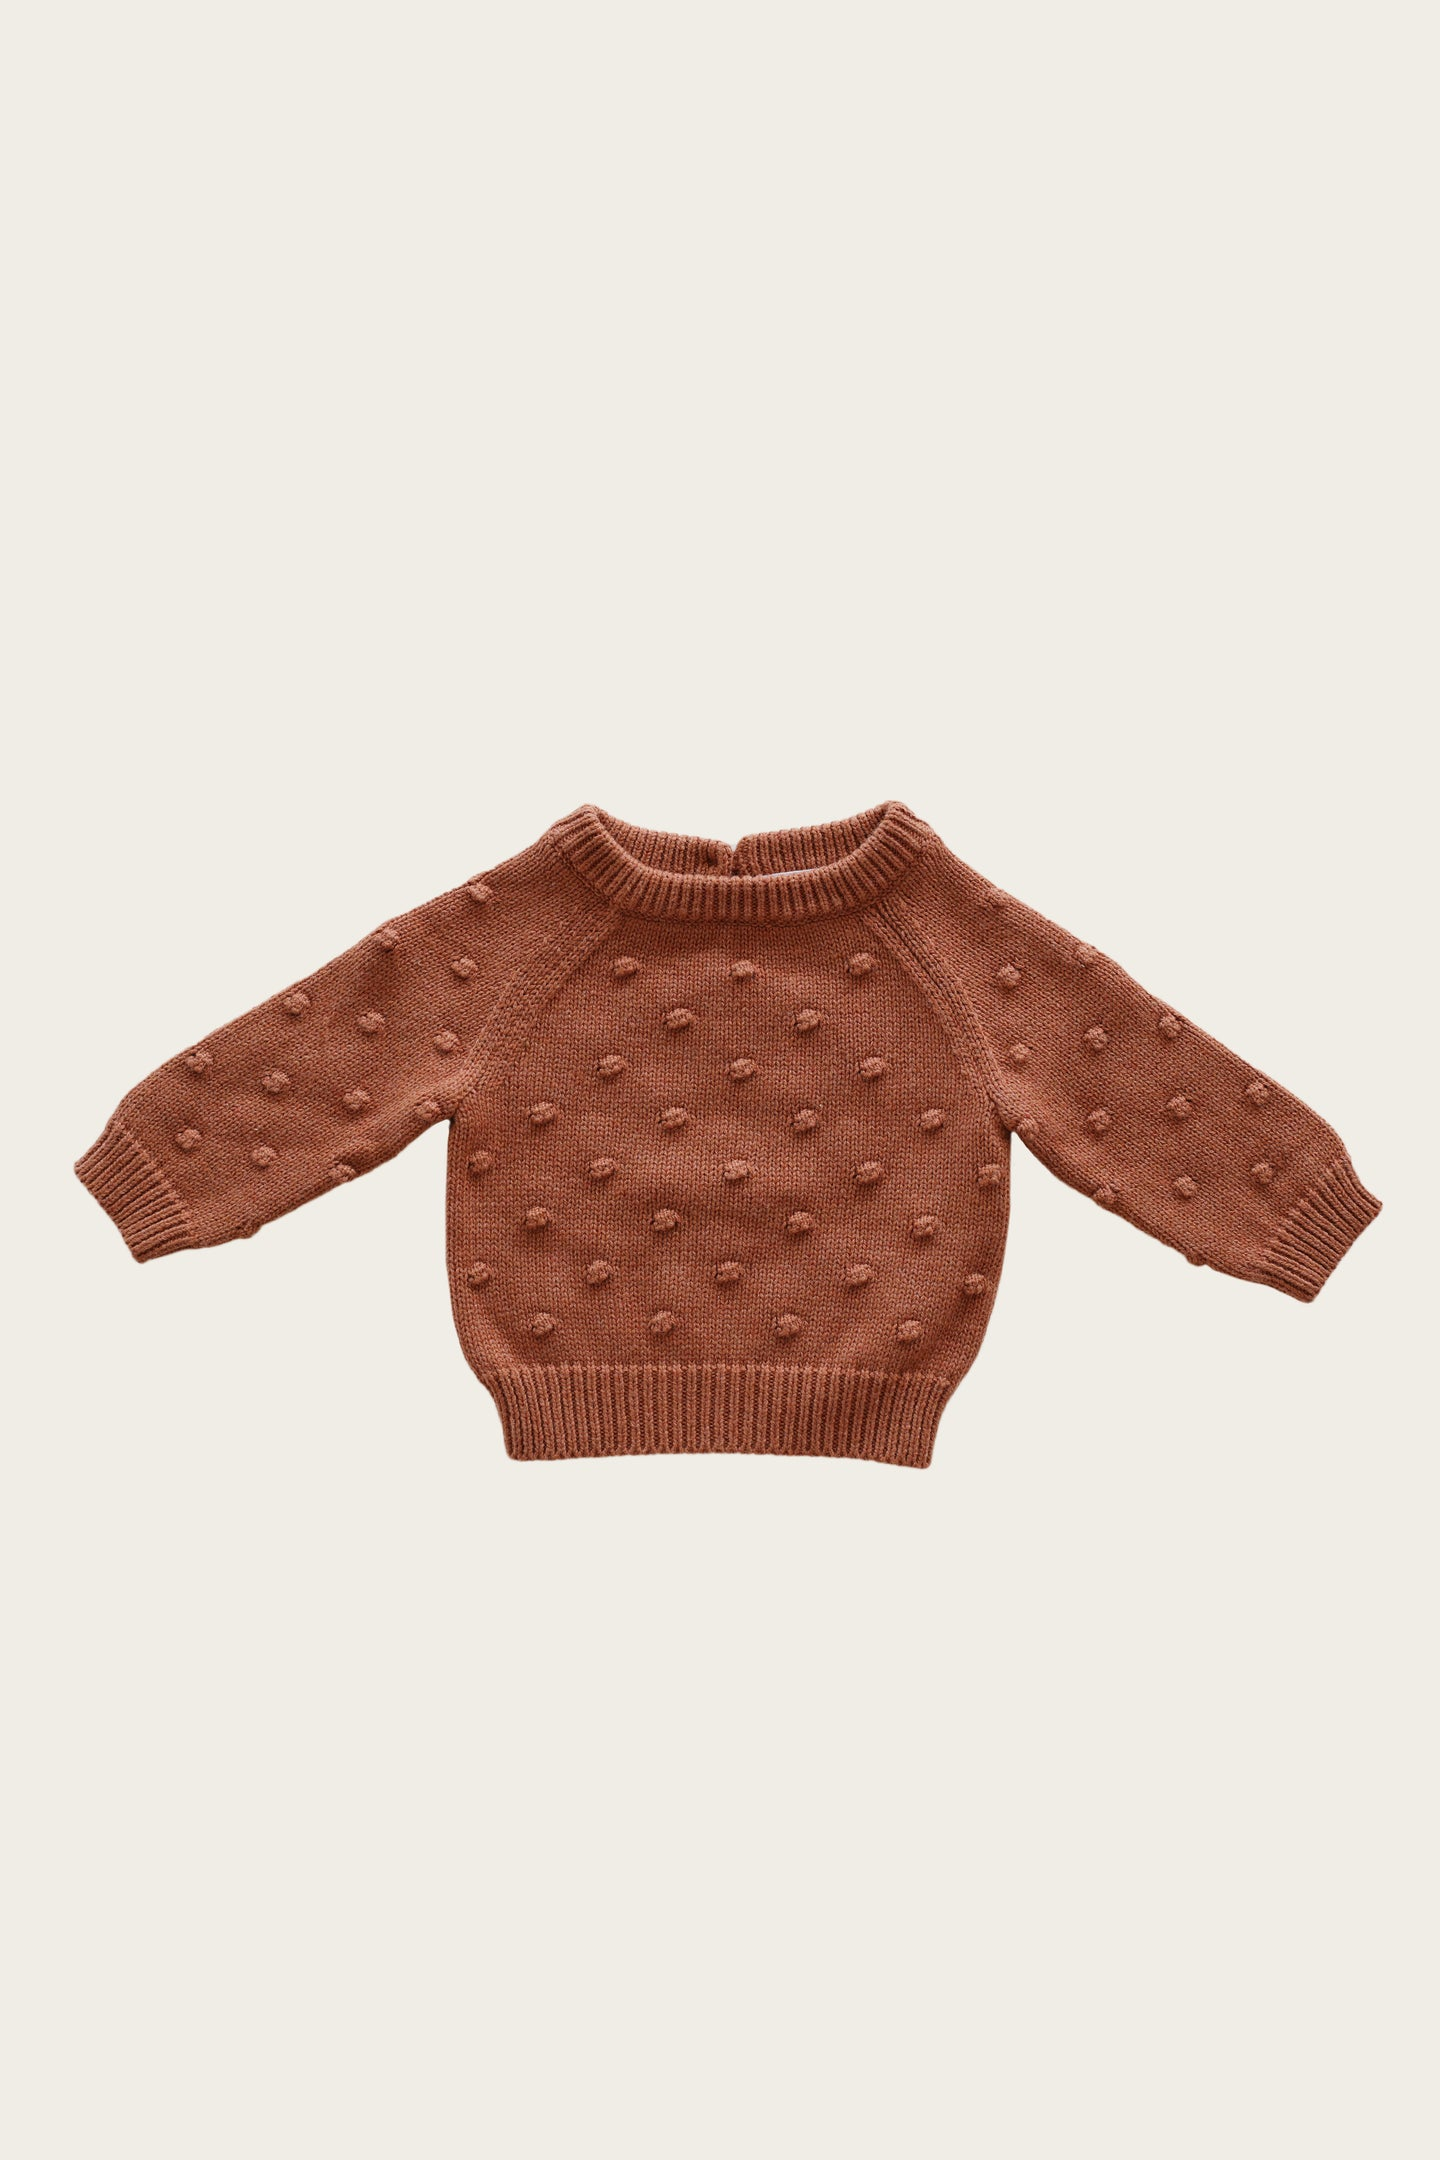 Jamie Kay Dotty Knit - Copper Marle